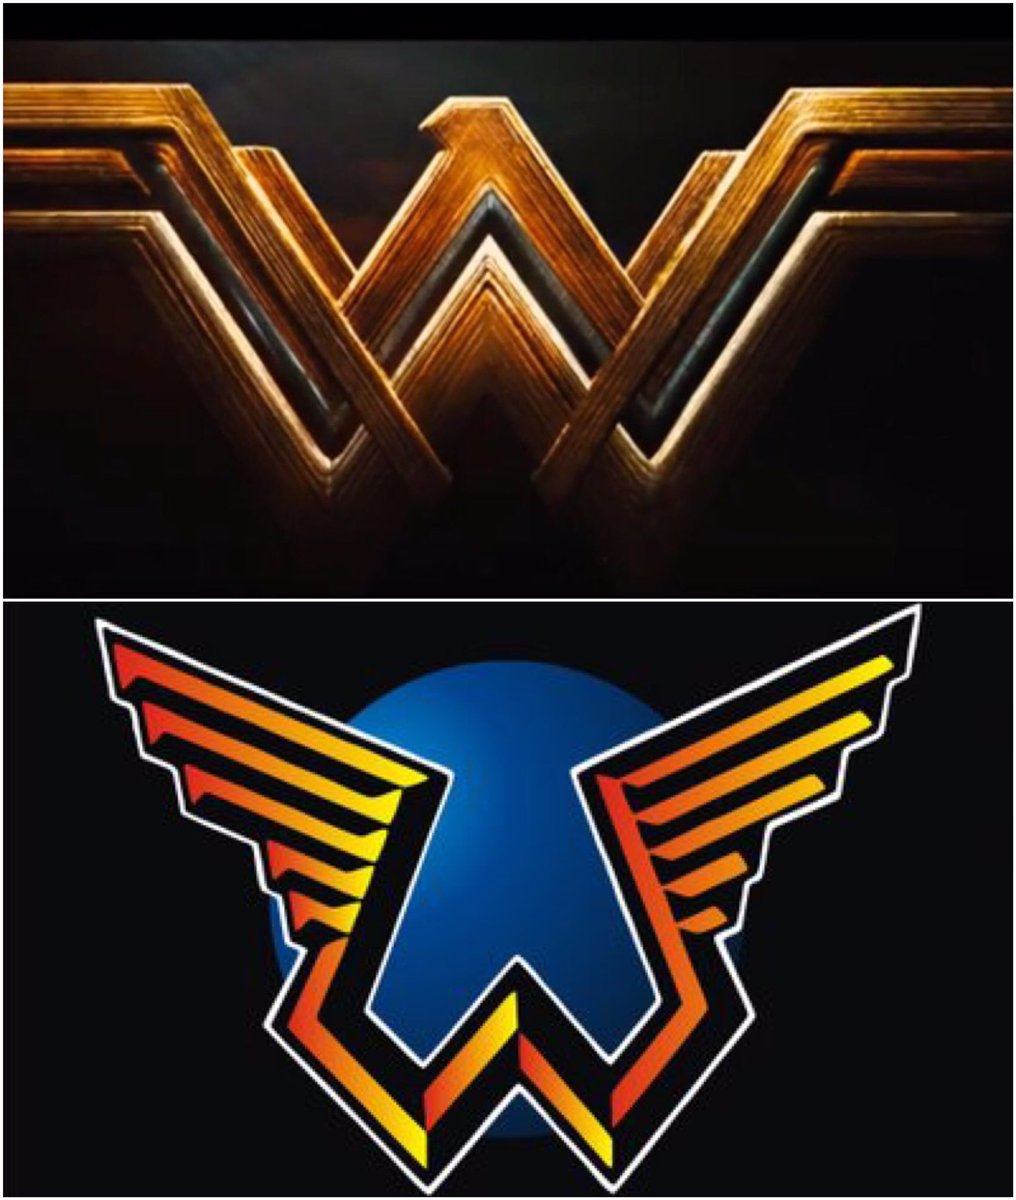 Paul Myers On Twitter No Diss Wonder Woman But The New Logo Is McCartney Wings AF